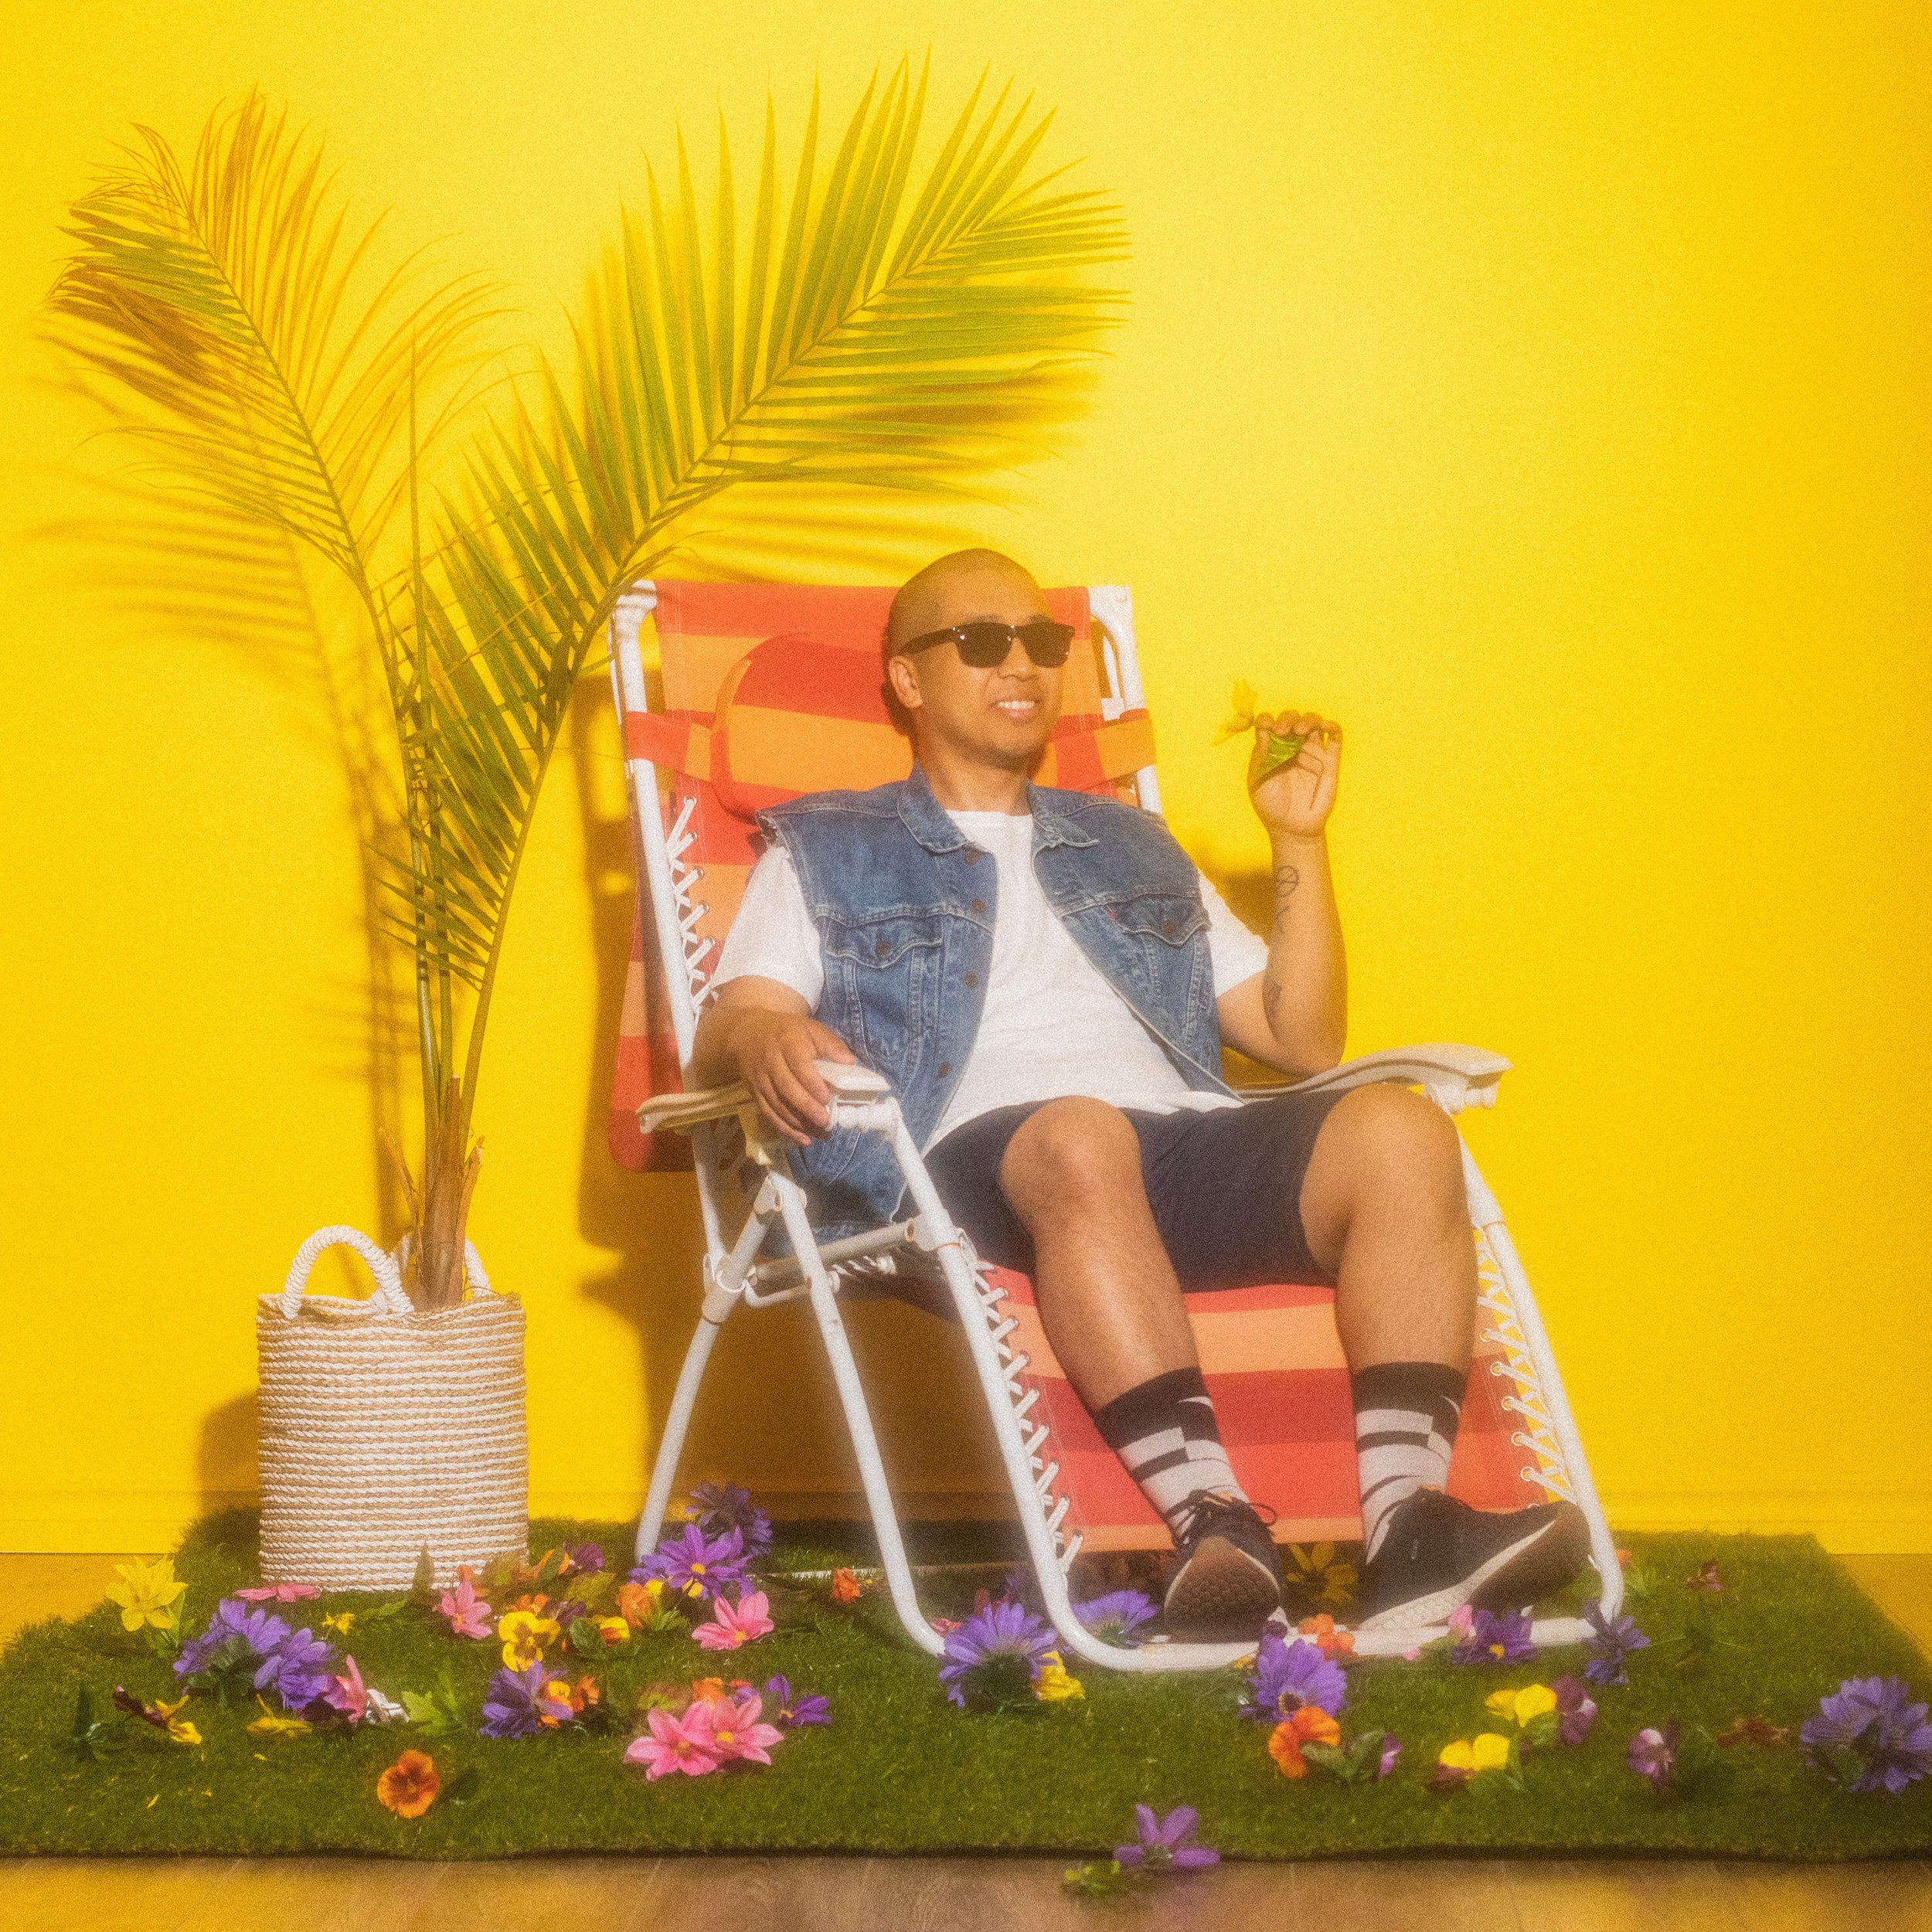 Give Me Summer EP Cover Art .jpg